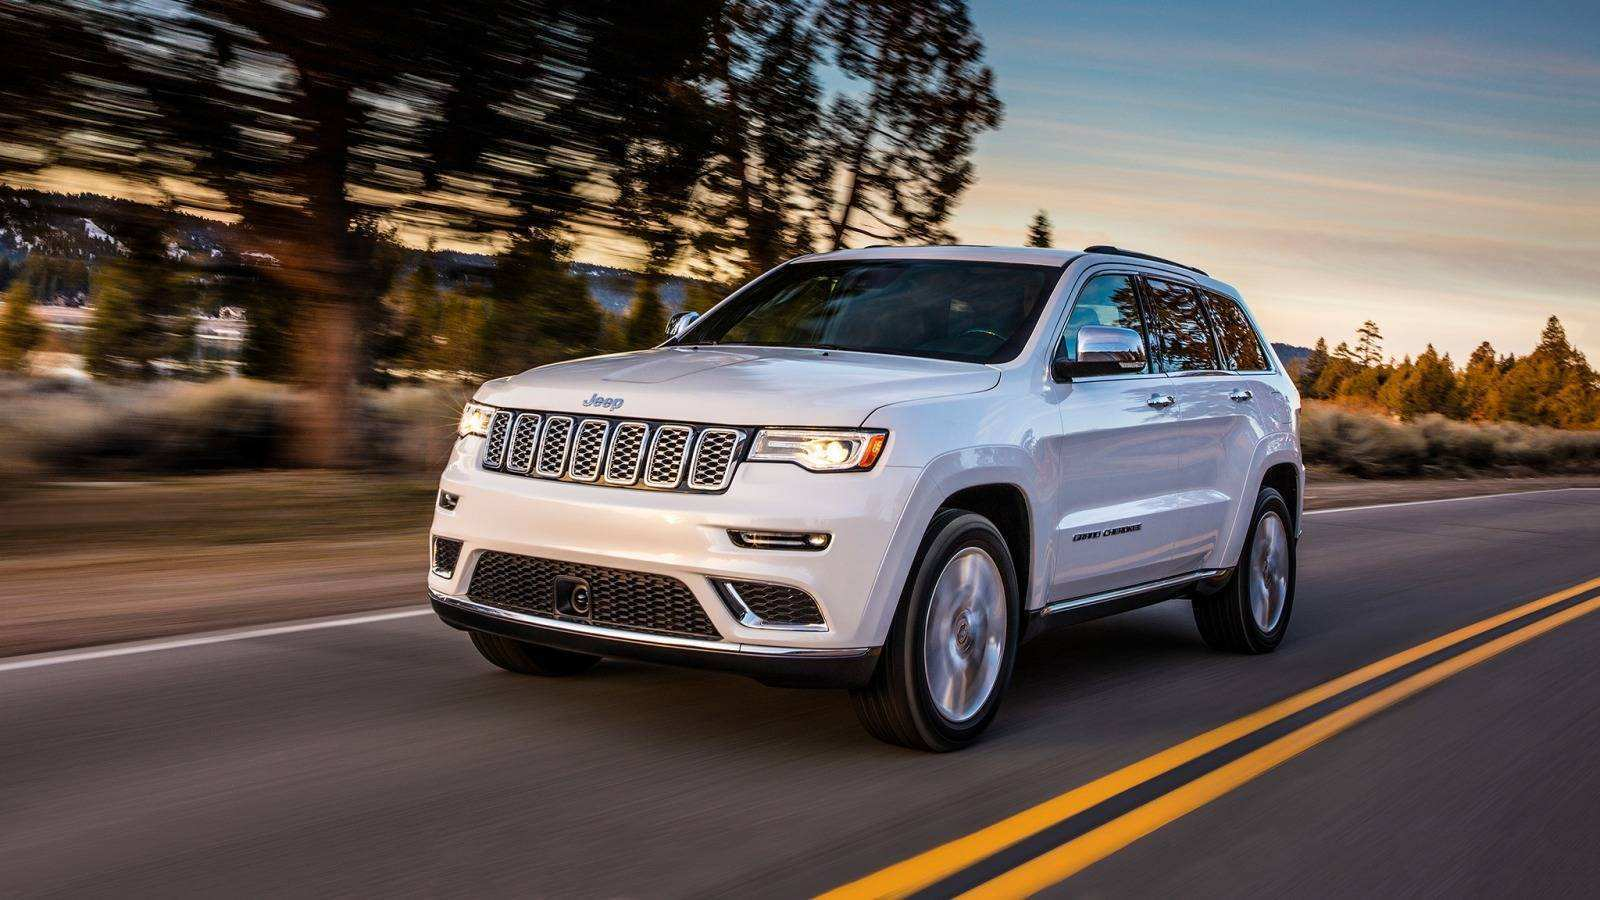 95 Concept of Best Cherokee Jeep 2019 Redesign And Concept Exterior and Interior with Best Cherokee Jeep 2019 Redesign And Concept